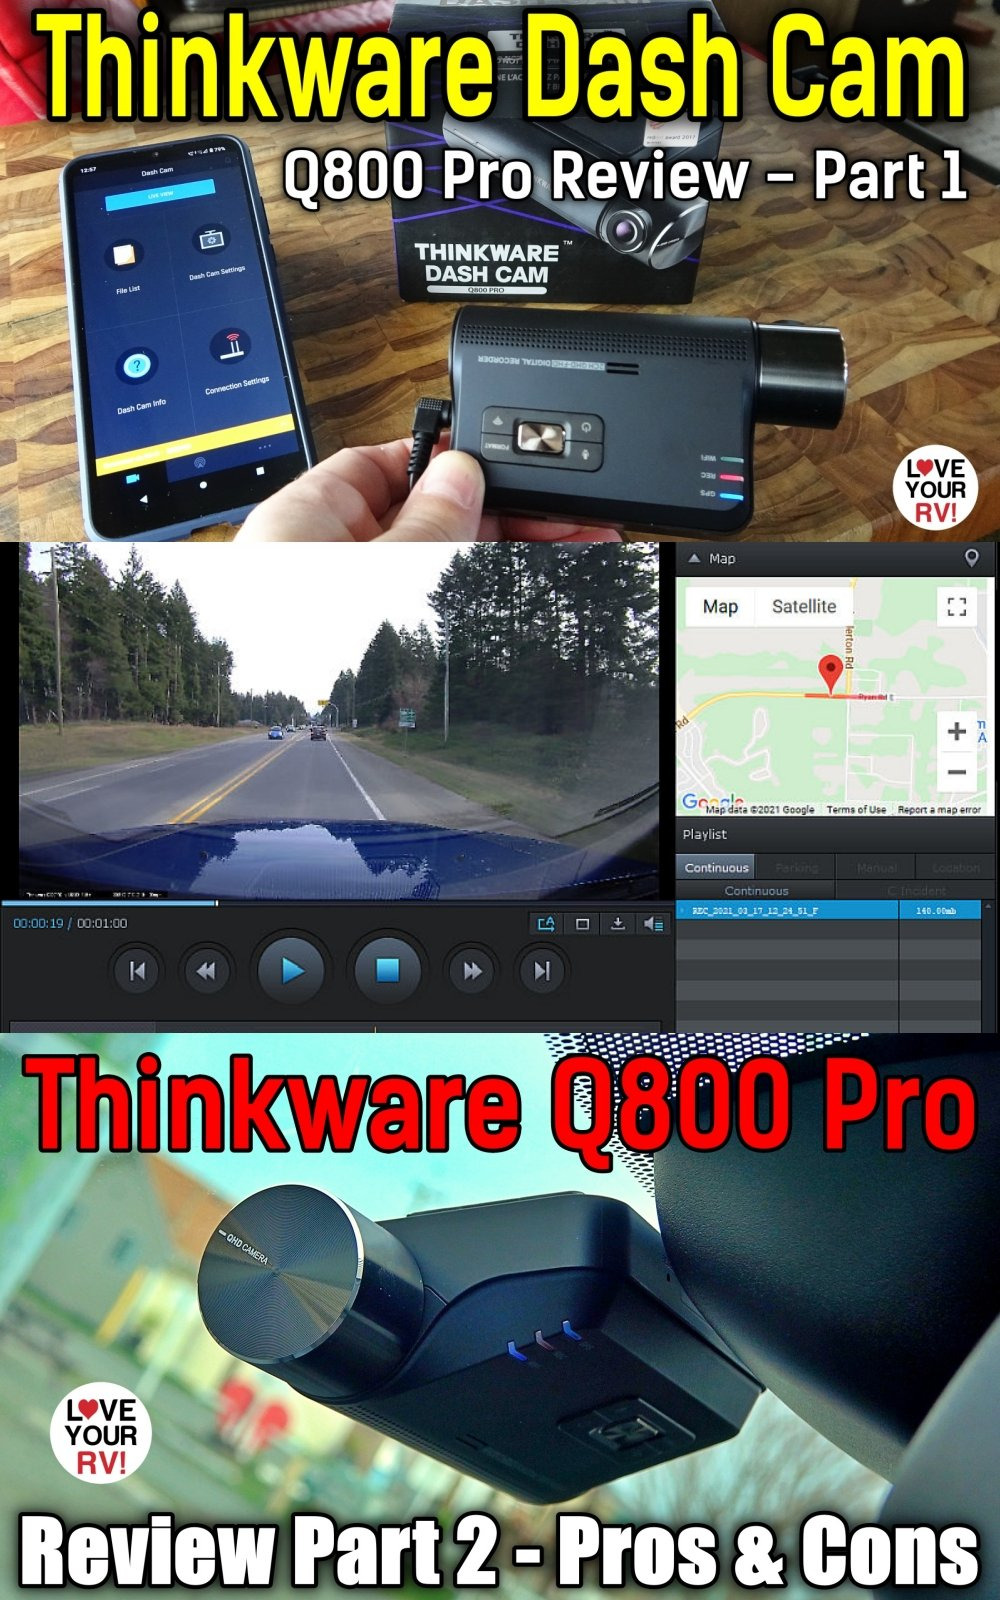 High End Dashcam Review Thinkware Cloud Q800 Pro Featuring Remote Tracking and Parking Surveillance